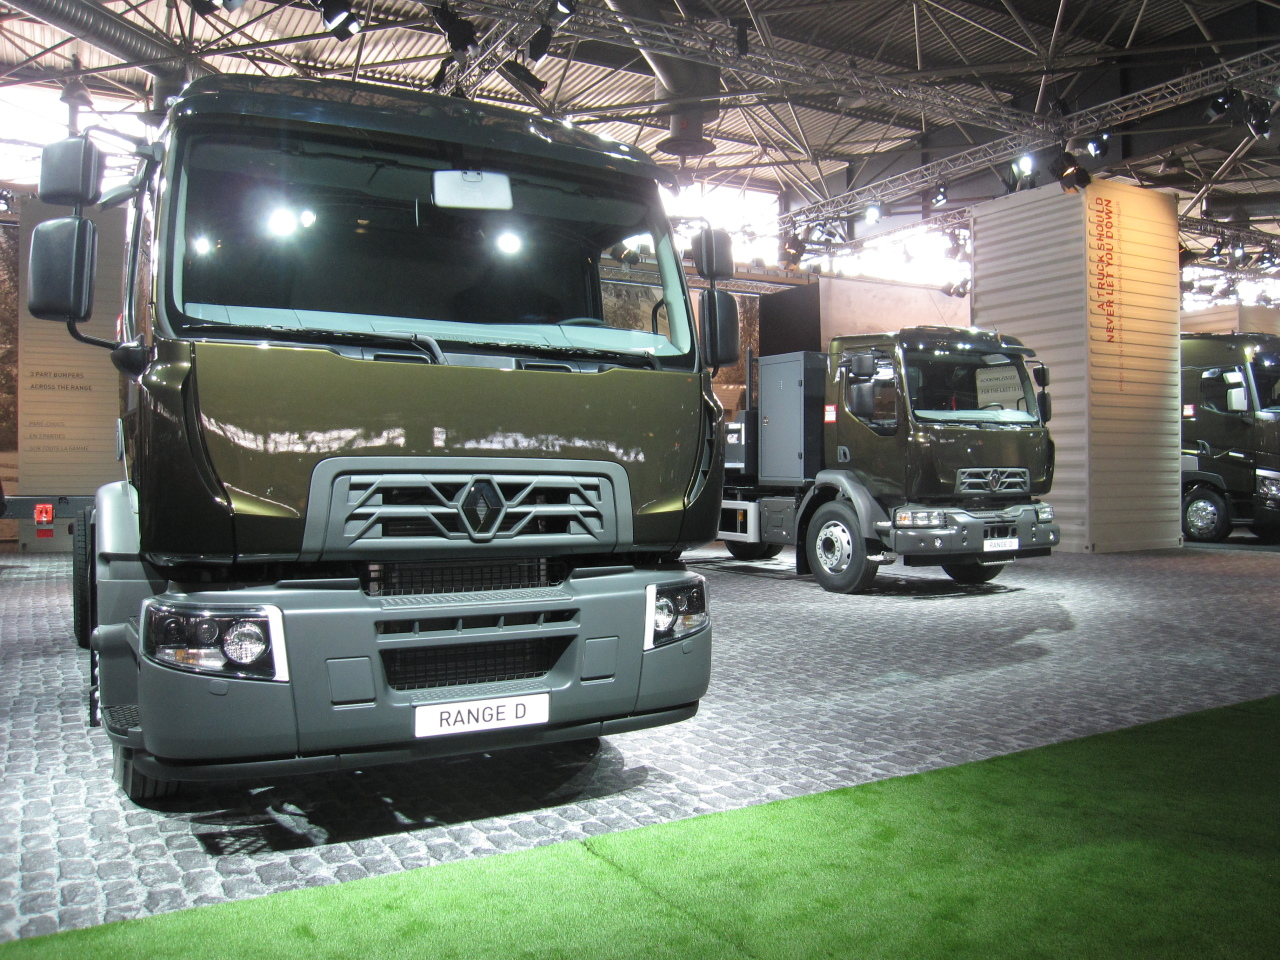 tout sur les nouveaux camions de renault trucks photo 2. Black Bedroom Furniture Sets. Home Design Ideas